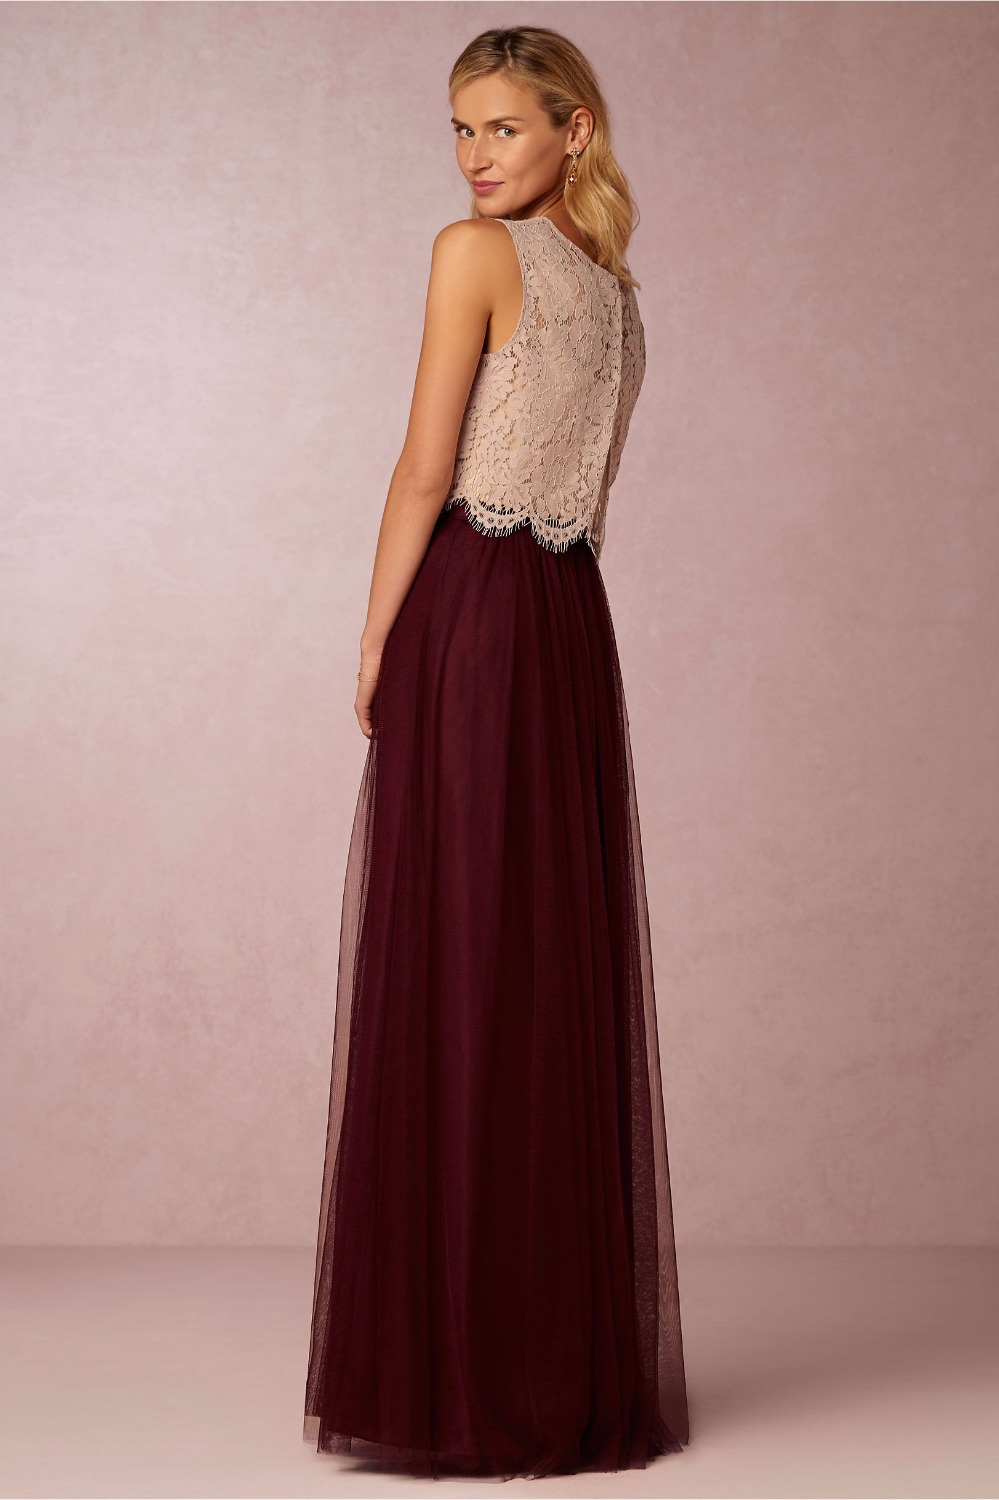 2017 burgundy two pieces long bridesmaid dresses lace top tulle 2017 burgundy two pieces long bridesmaid dresses lace top tulle skirt women formal boho wedding party gowns custom made new sale in bridesmaid dresses from ombrellifo Gallery